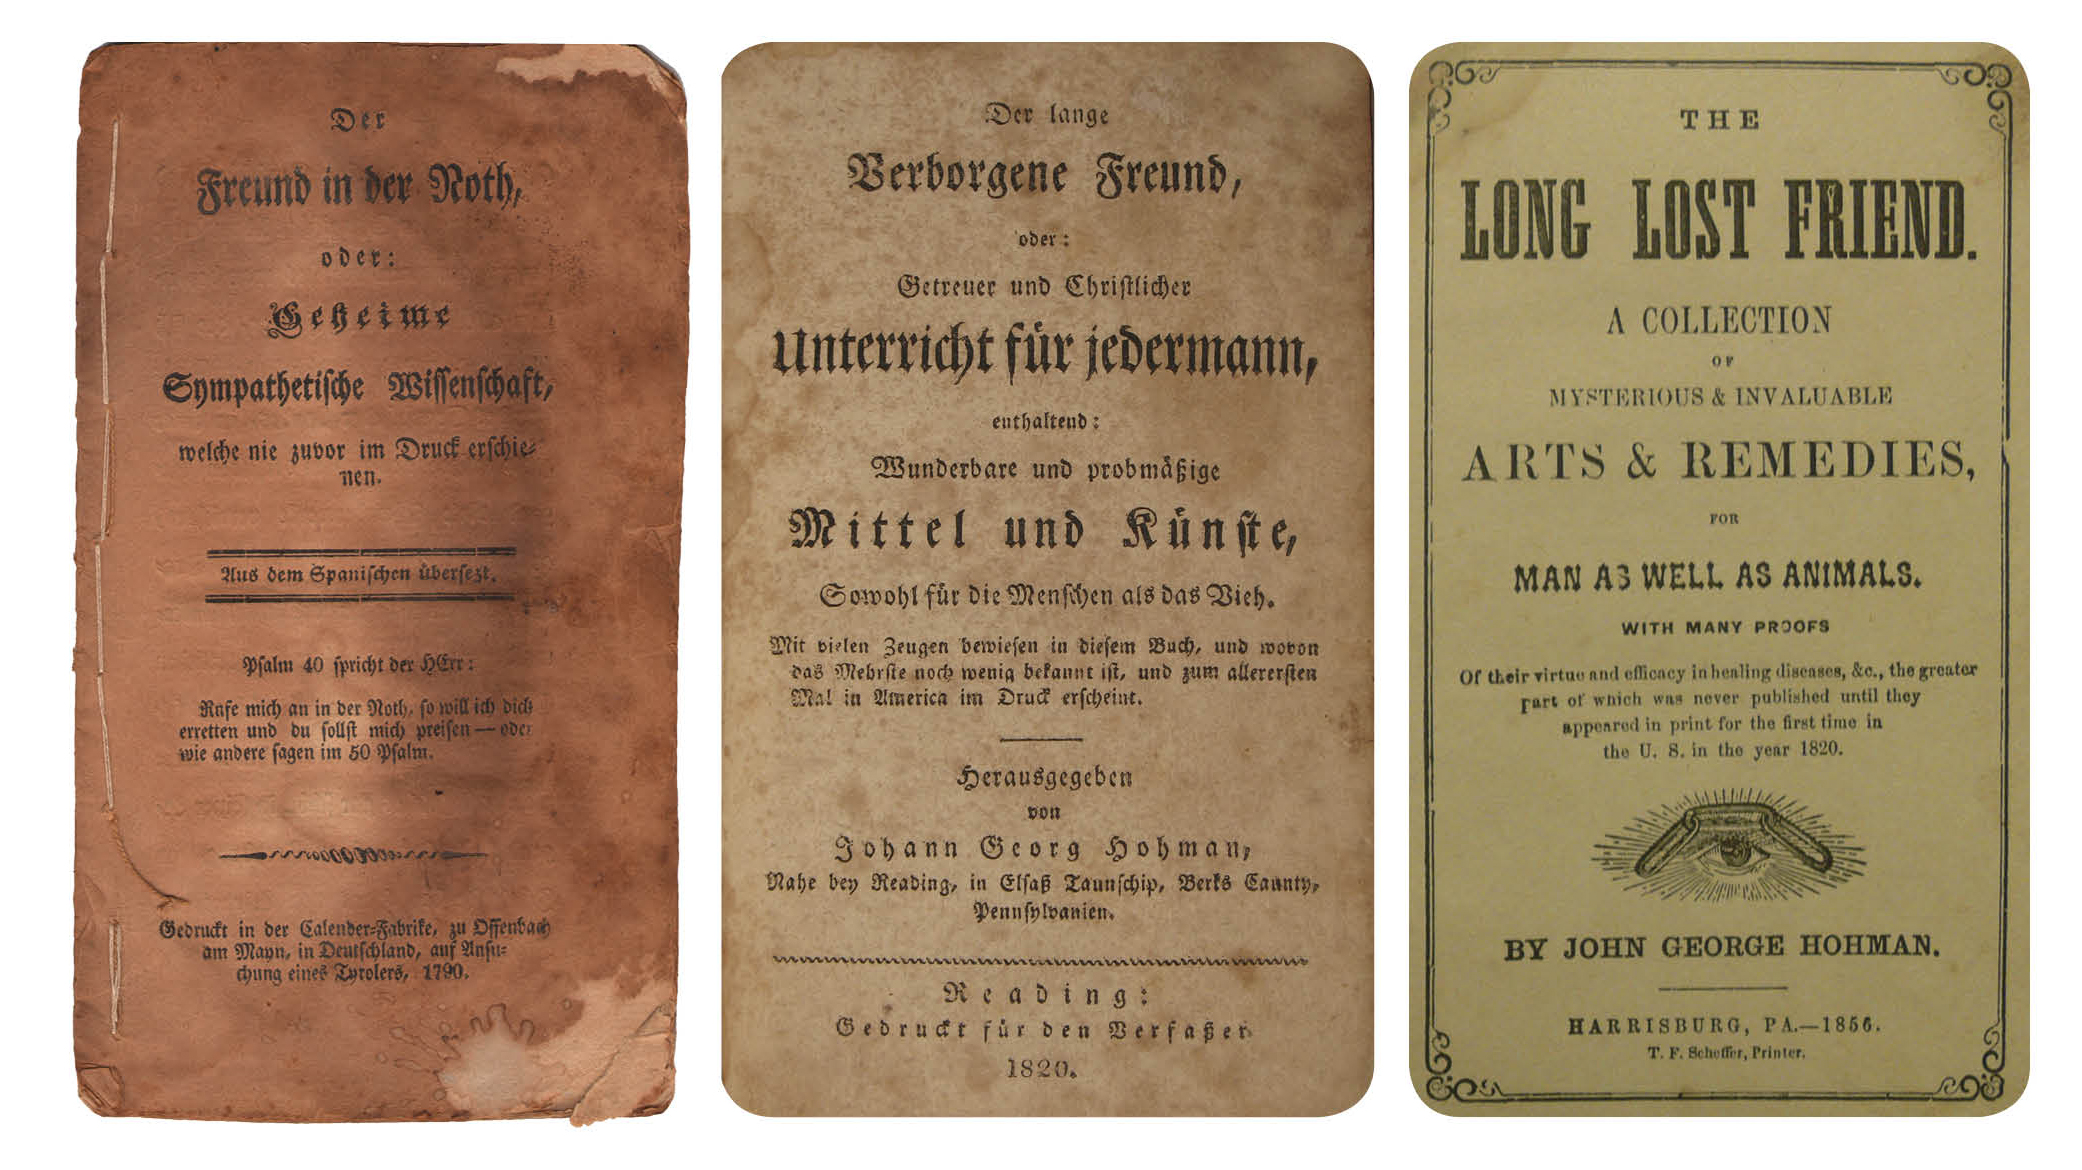 Figure 25:  Left to Right :  Der Freund in der Noth  ( The Friend in Need ) 1813, Reading, PA. Pennsylvania German Cultural Heritage Center, Kutztown University.A lesser-known collection of cures and rituals, compiled by Johann Georg Hohman in 1813, printed by Johann Ritter of the  Readinger Adler .  Johann Georg Hohman's  Der lange Verborgene Freund  ( The Long Lost Friend ) 1819-1820. Reading, PA. Heilman Collection of Patrick J. Donmoyer.   The Long Lost Friend , Harrisburg, PA: Theodore F. Scheffer, 1856. Heilman Collection of Patrick J. Donmoyer.